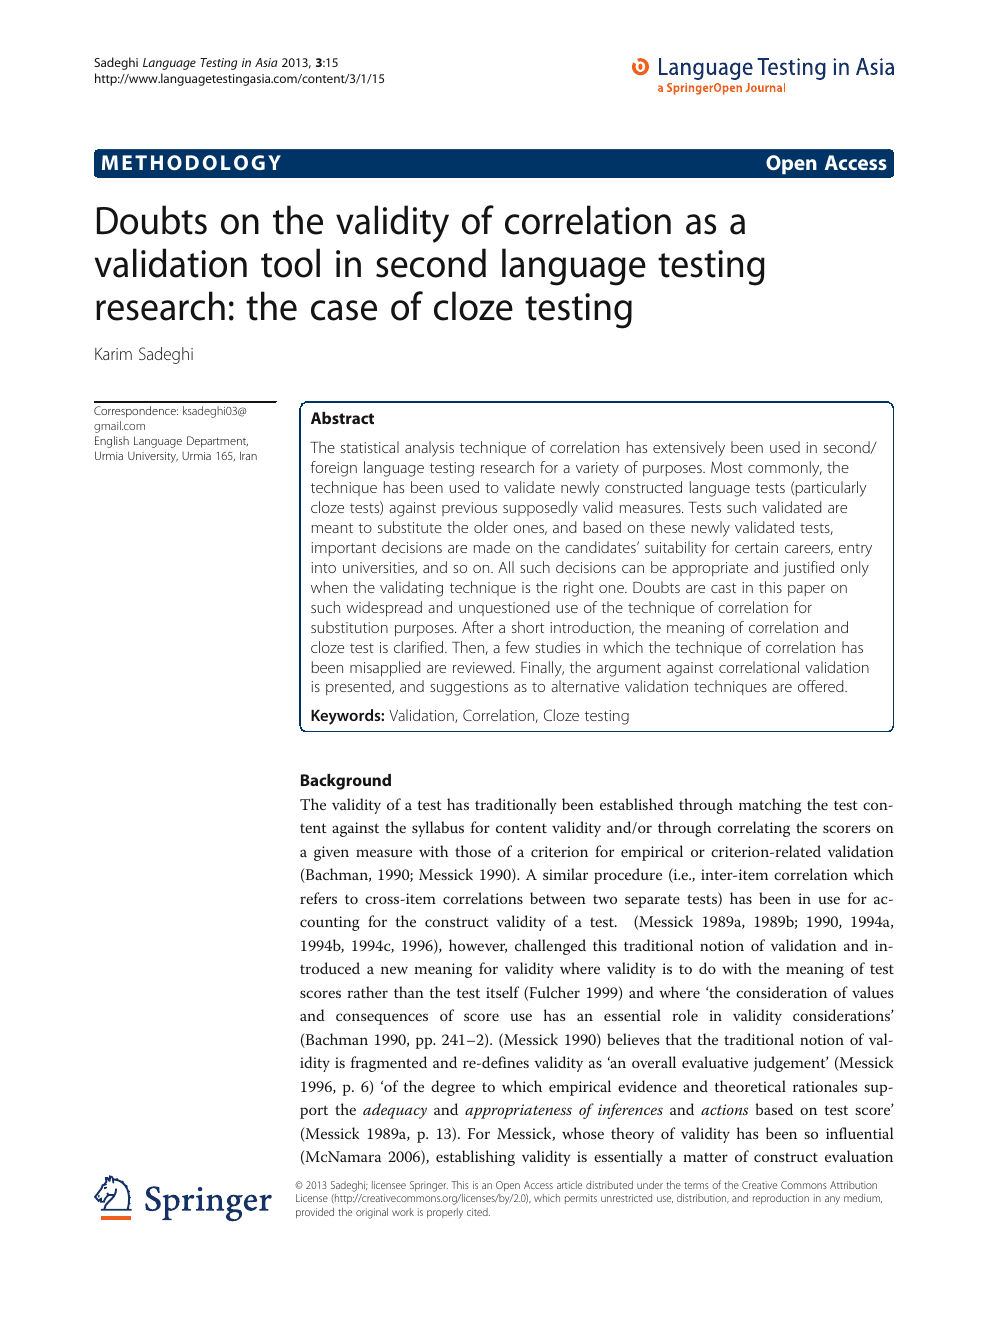 Doubts on the validity of correlation as a validation tool